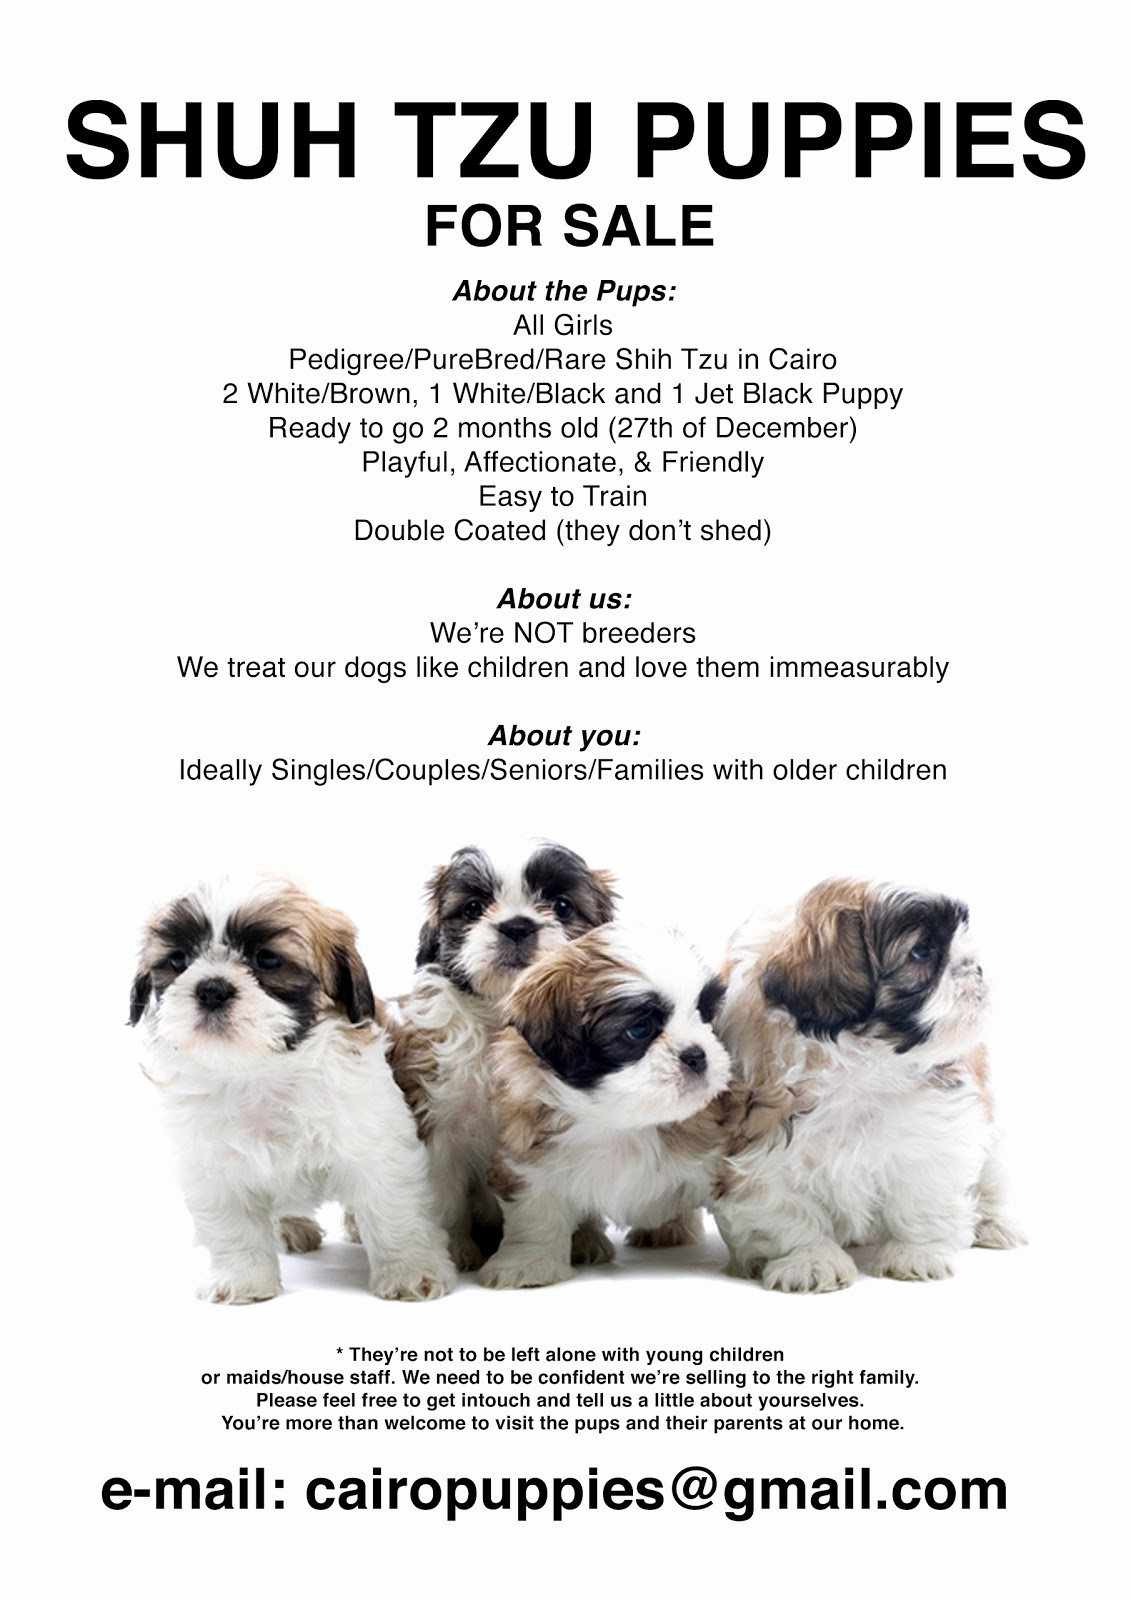 Puppies for Sale Flyer Template Fresh Shih Tzu Puppies for Sale Flyer & Info